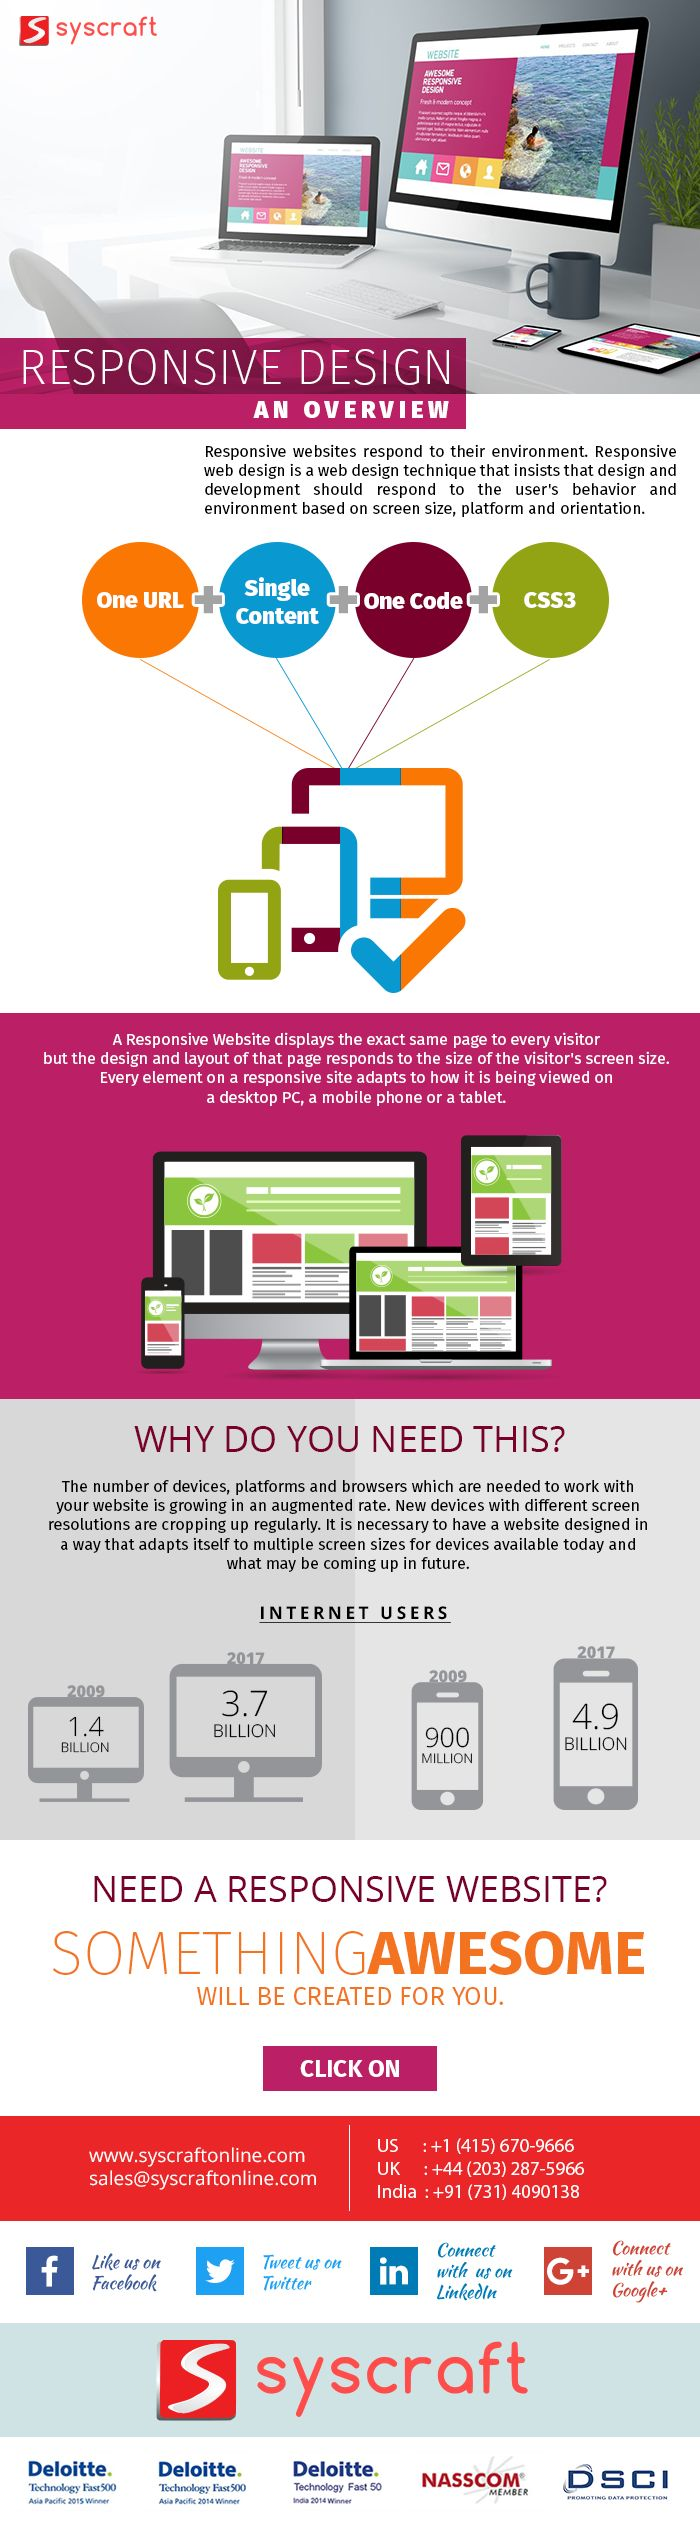 The number of devices, platforms and browsers which are needed to work with your website is growing in an augmented rate. New devices with different screen resolutions are cropping up regularly. It's important to have a RESPONSIVE DESIGN for your business! Get your hands on best services for lasting business solutions.  #website #ResponsiveDesign  #ResponsiveWebsite  #MobileDevelopment #WebsiteDevelopment  #ITCompany  #ITCompany